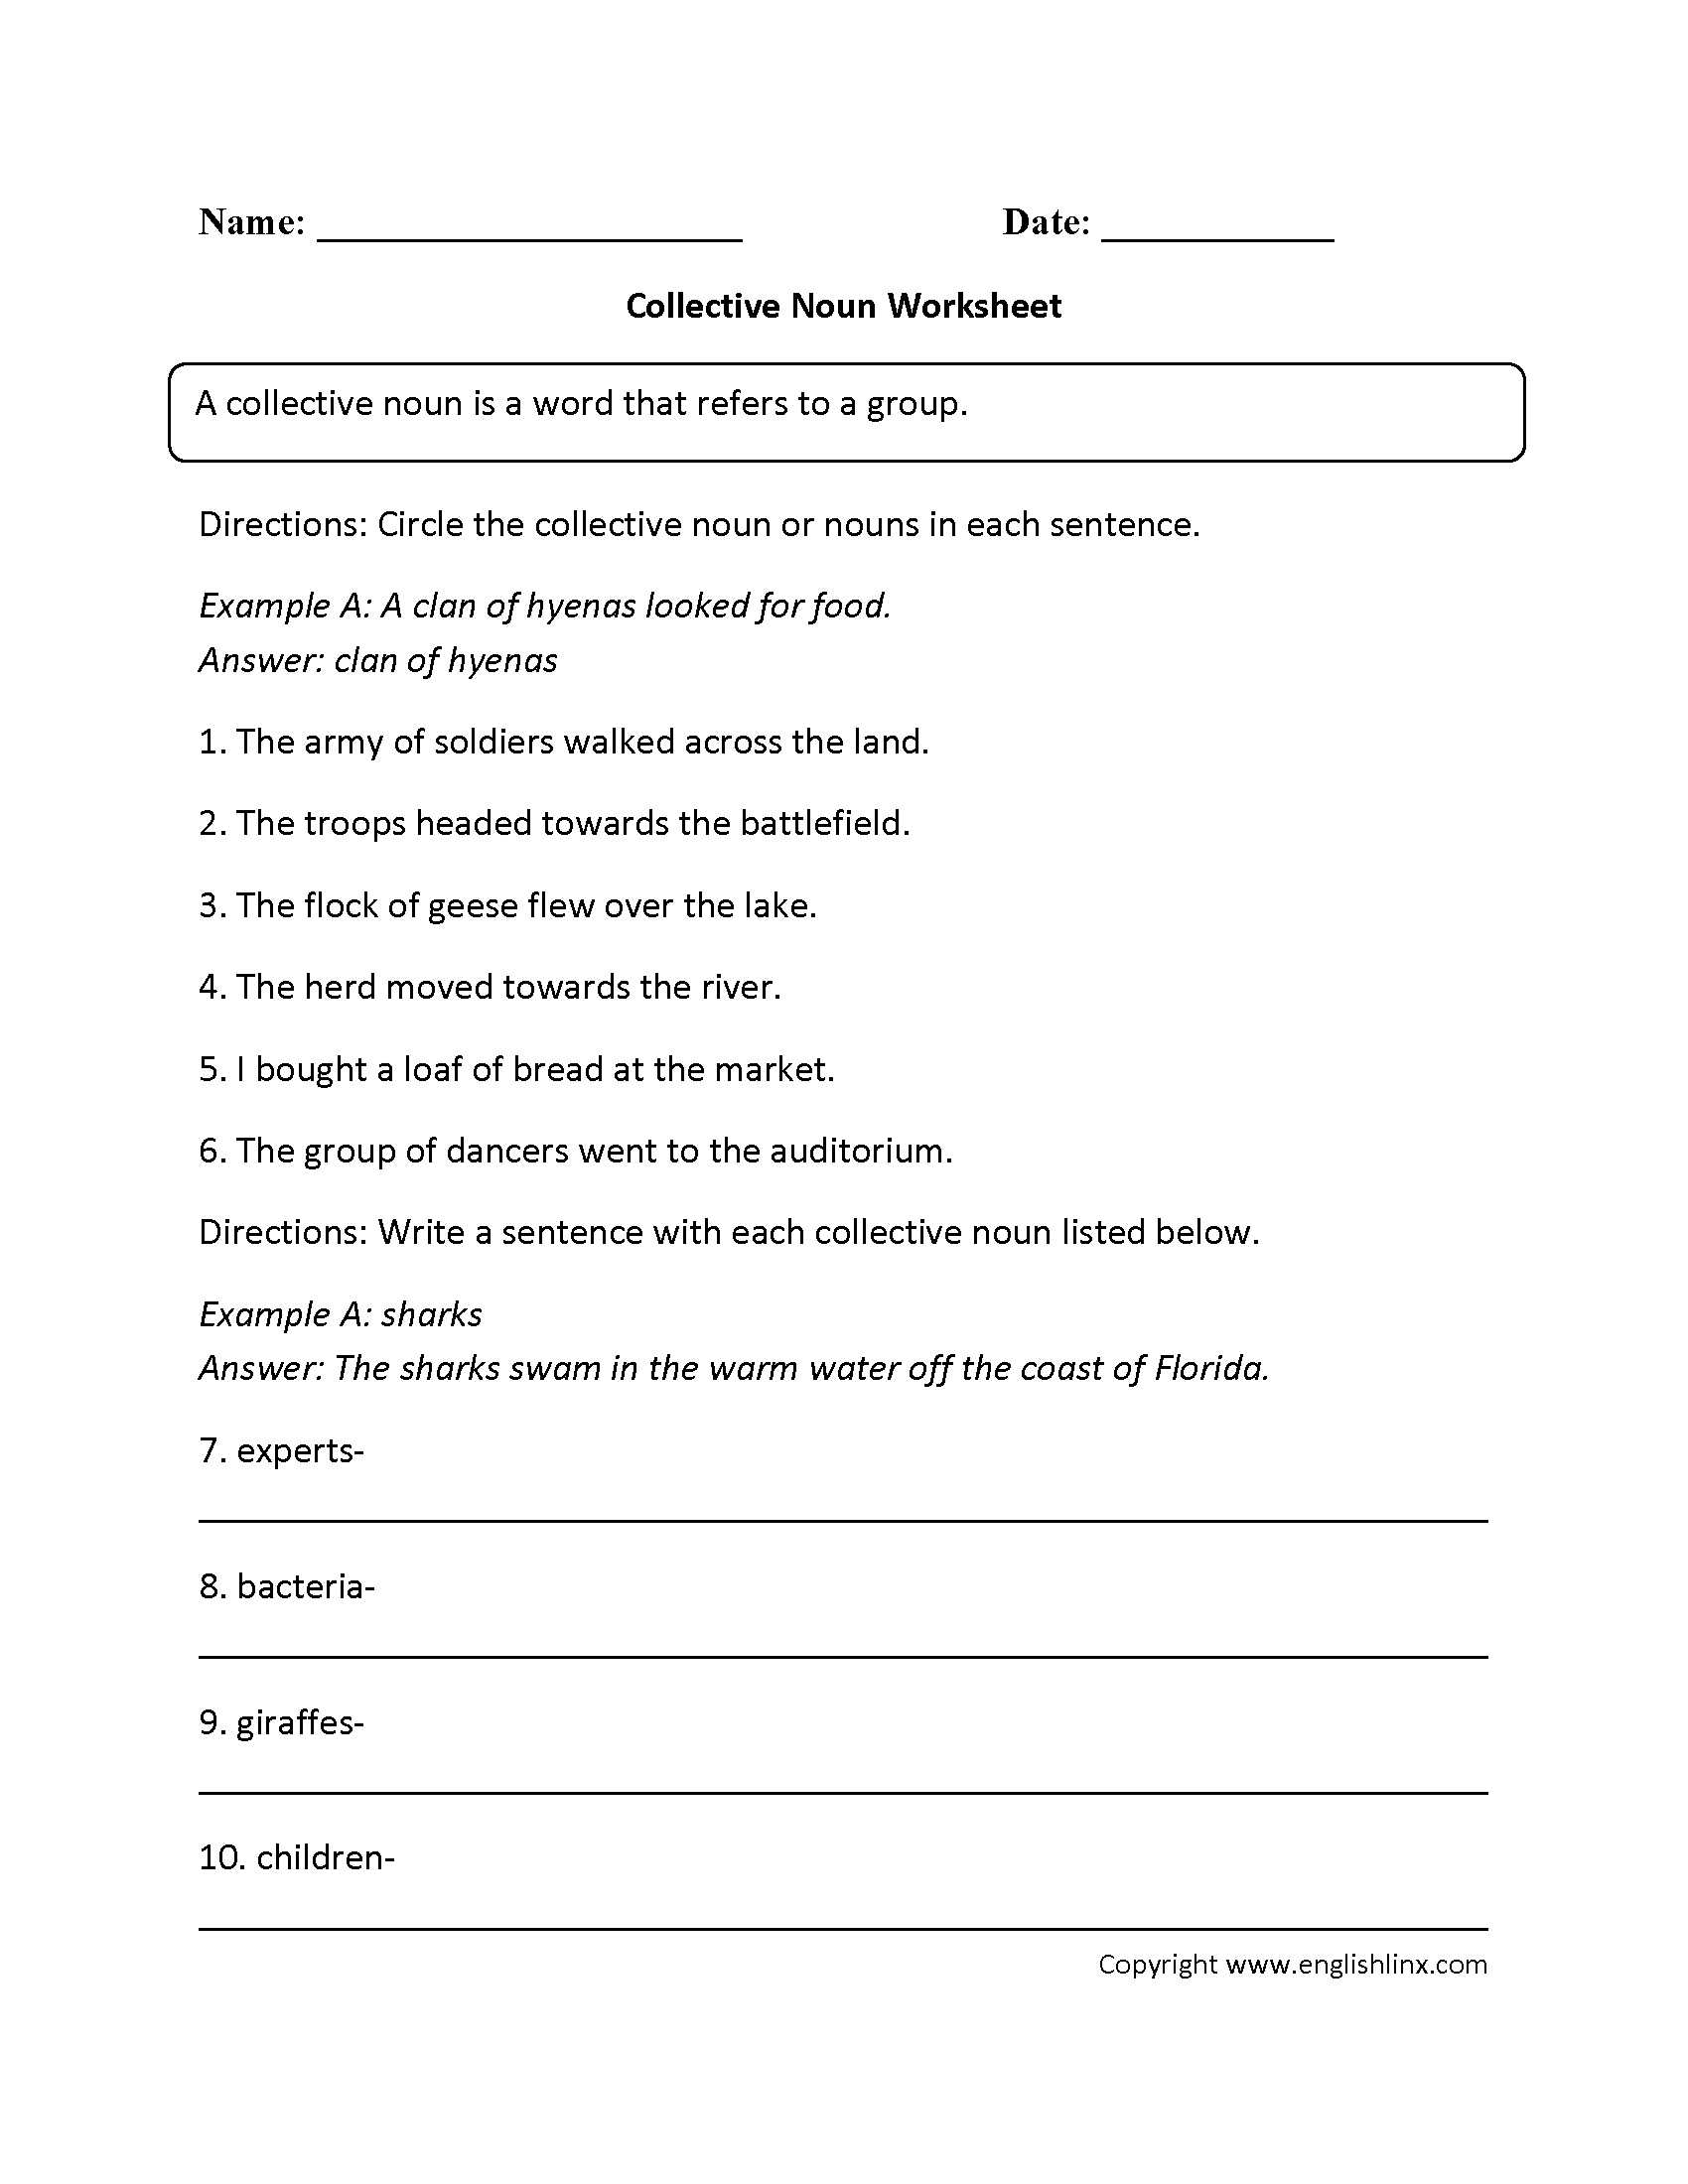 19 Best Images Of Collective Noun Worksheets For 2nd Grade